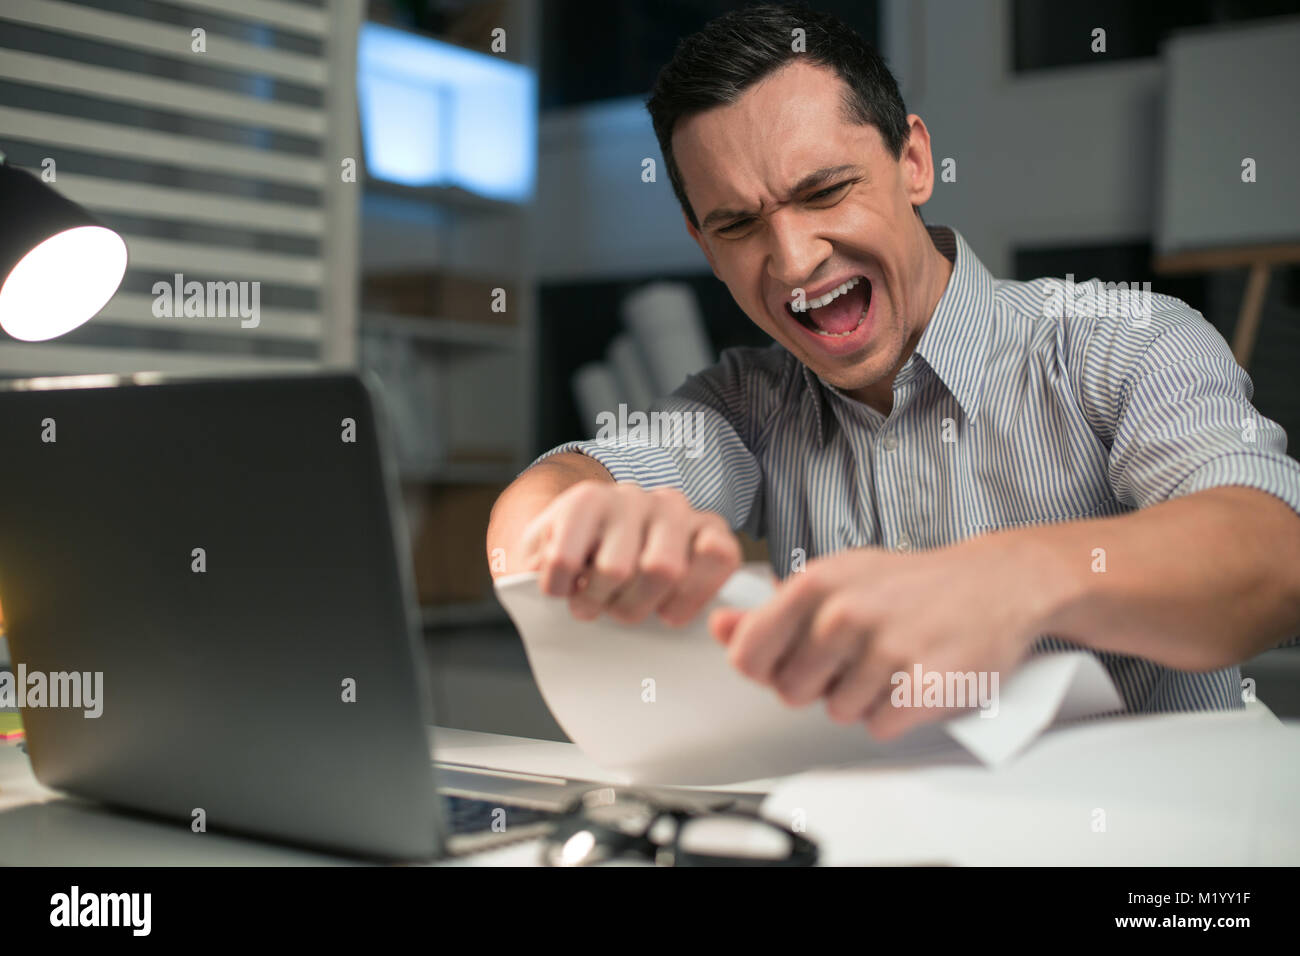 Emotional male employee tearing papers - Stock Image